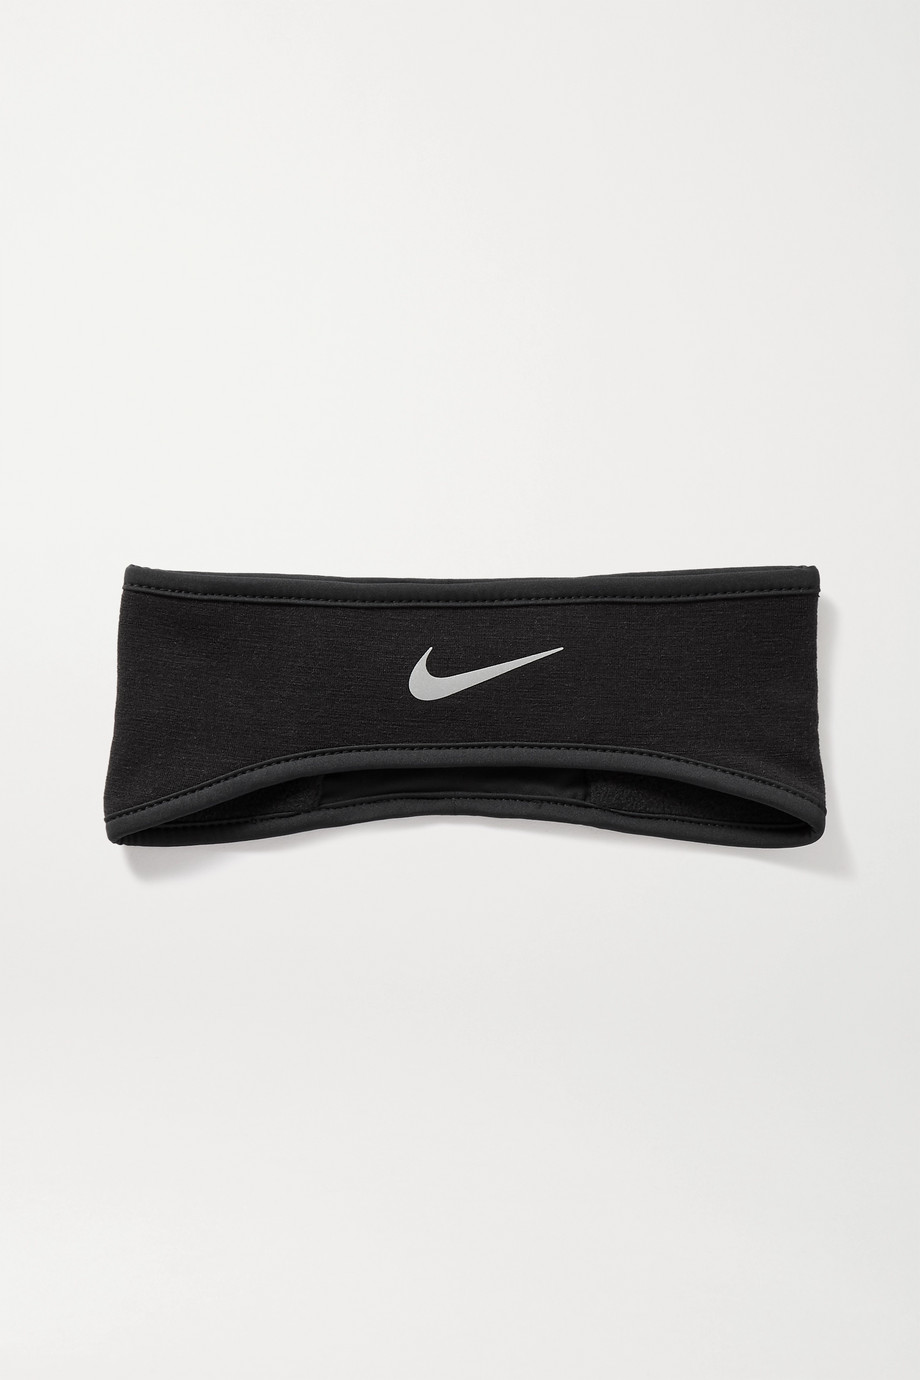 NIKE Printed Dri-FIT headband